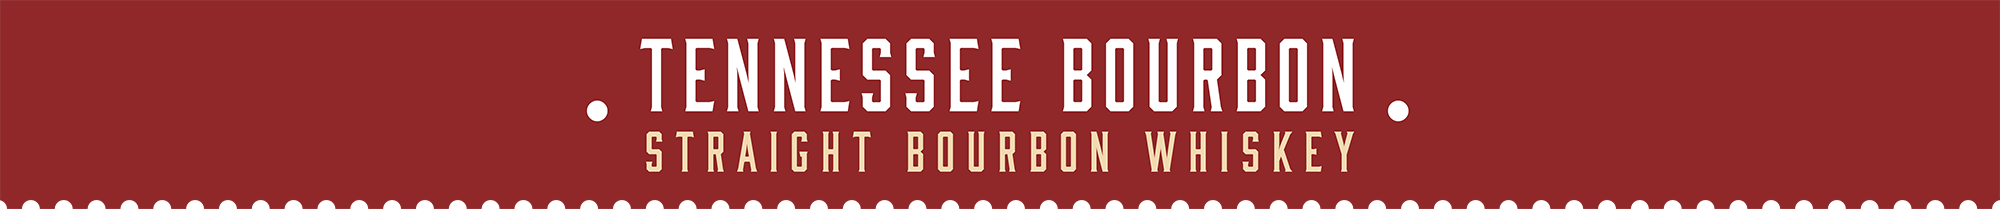 tn-bourbon-2k.png